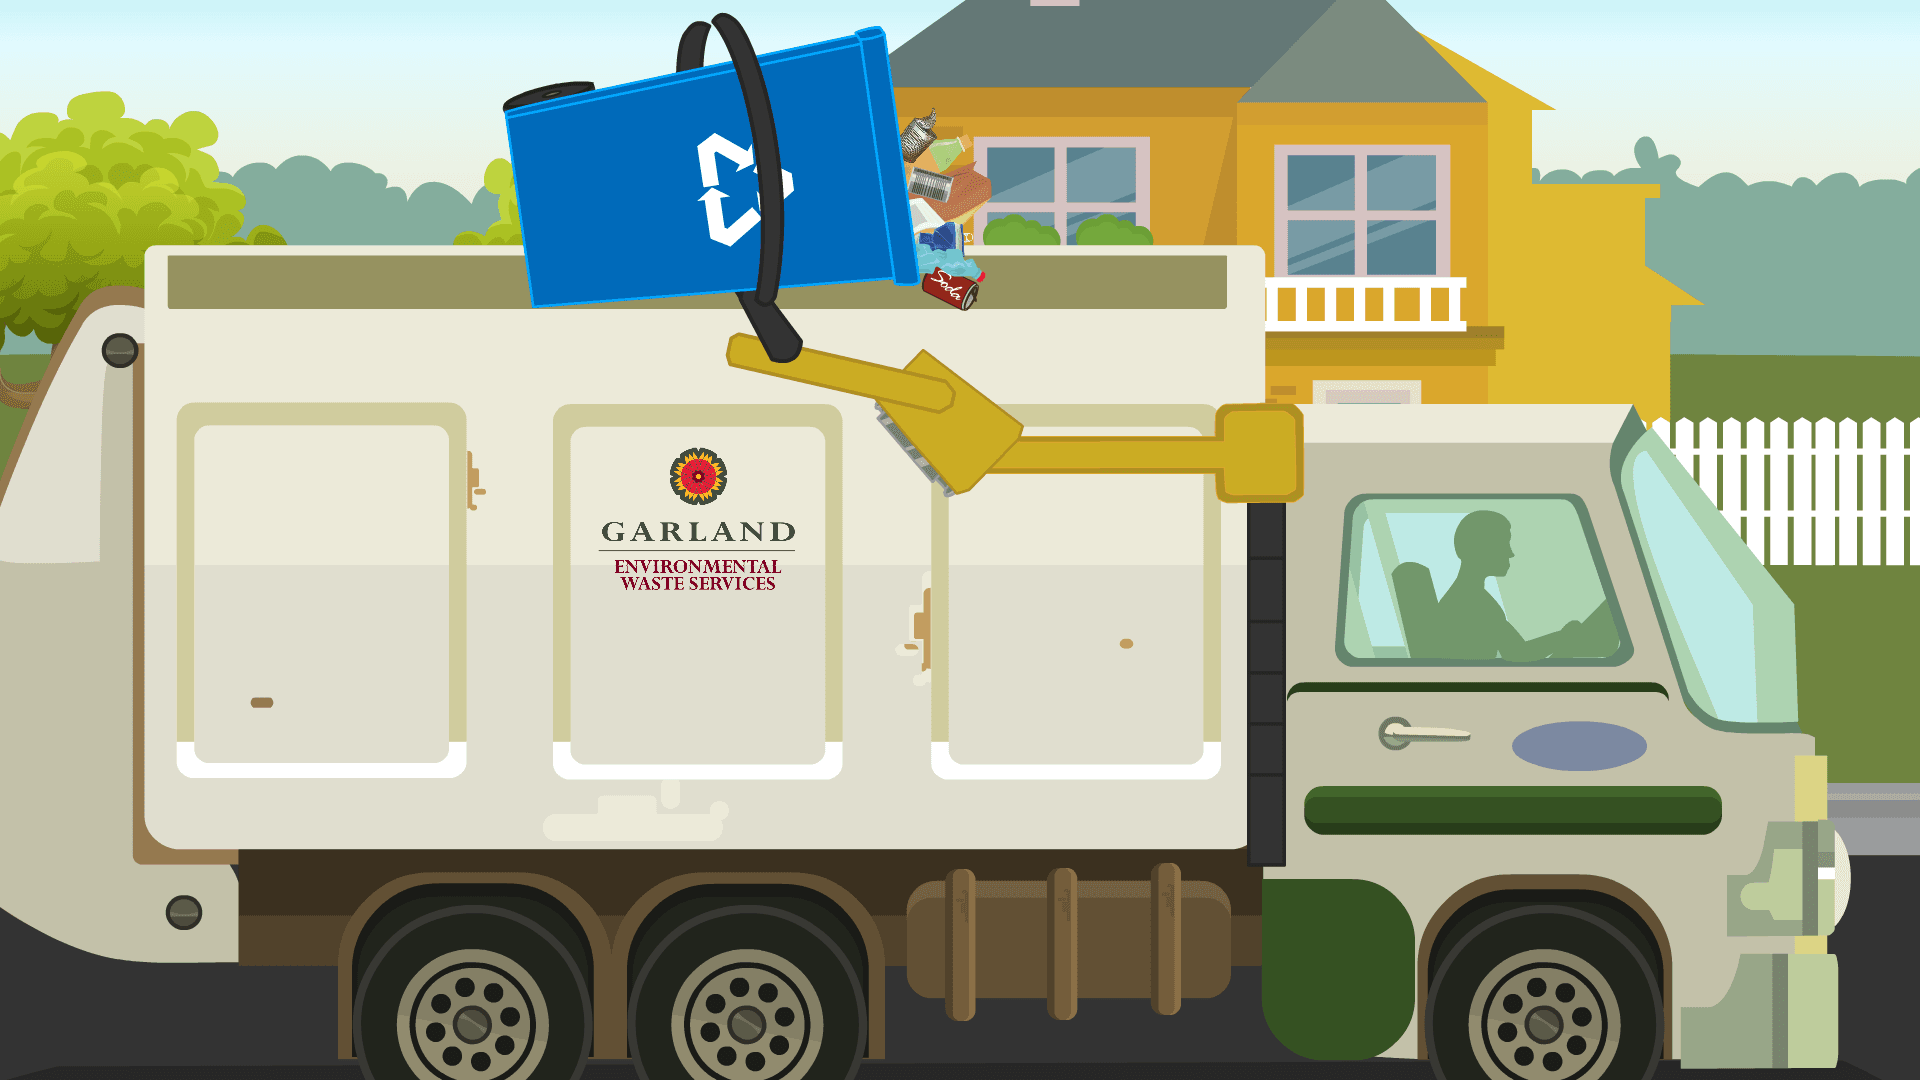 Garland Recycling Truck